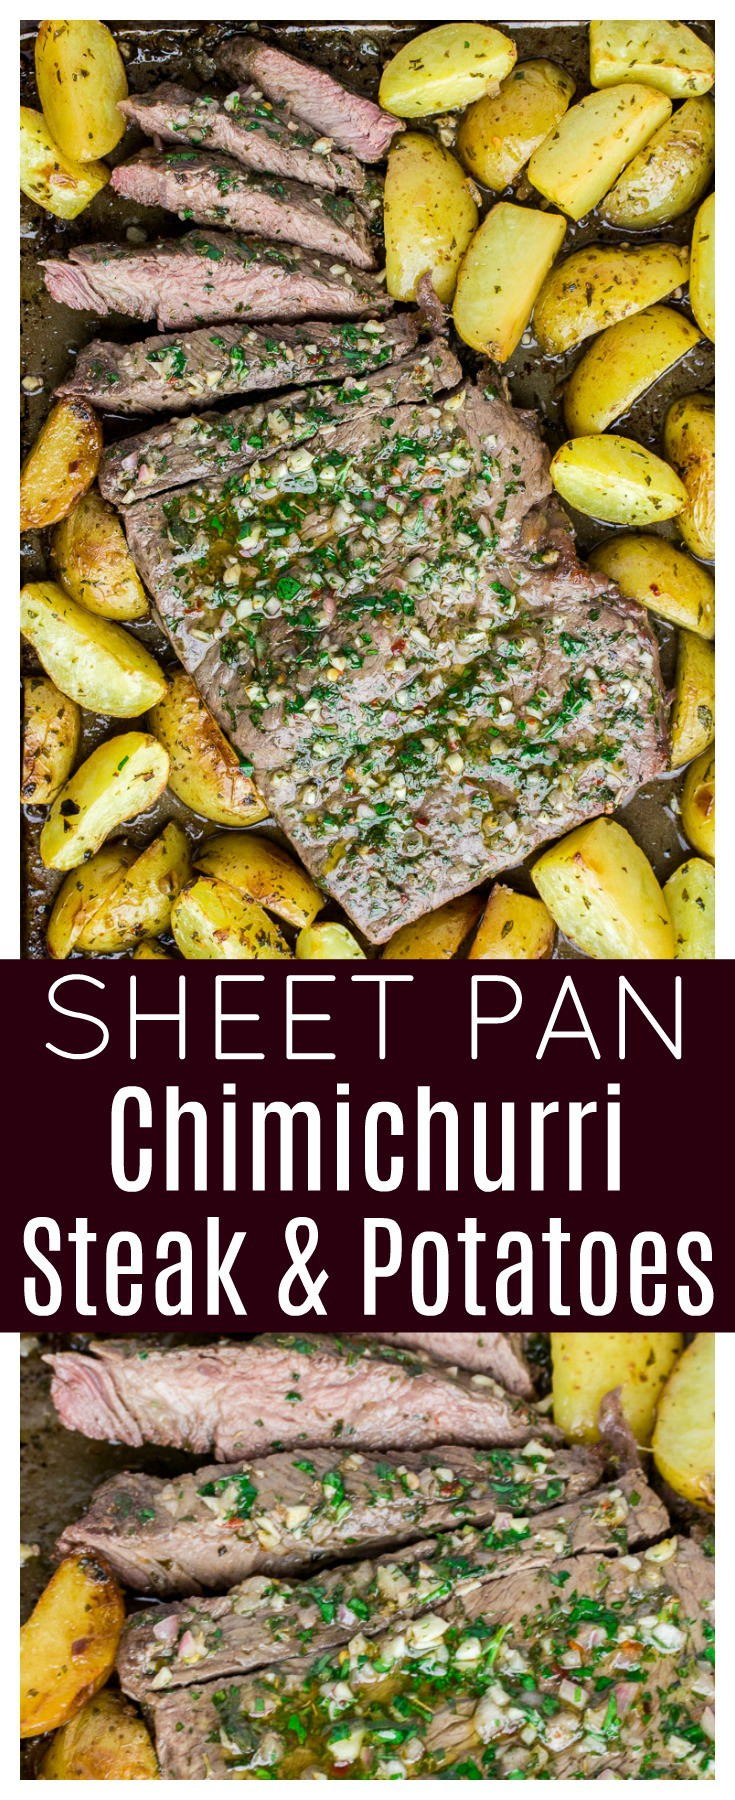 Sheet Pan Chimichurri Steak and Potatoes - an easy recipe that's great for busy weeknights! Marinate the meat in the morning or overnight and have this sheet pan dinner on the table in about 30 minutes! | #ad #sheetpanmeal #chimichurristeak #sealtosavor #glutenfree